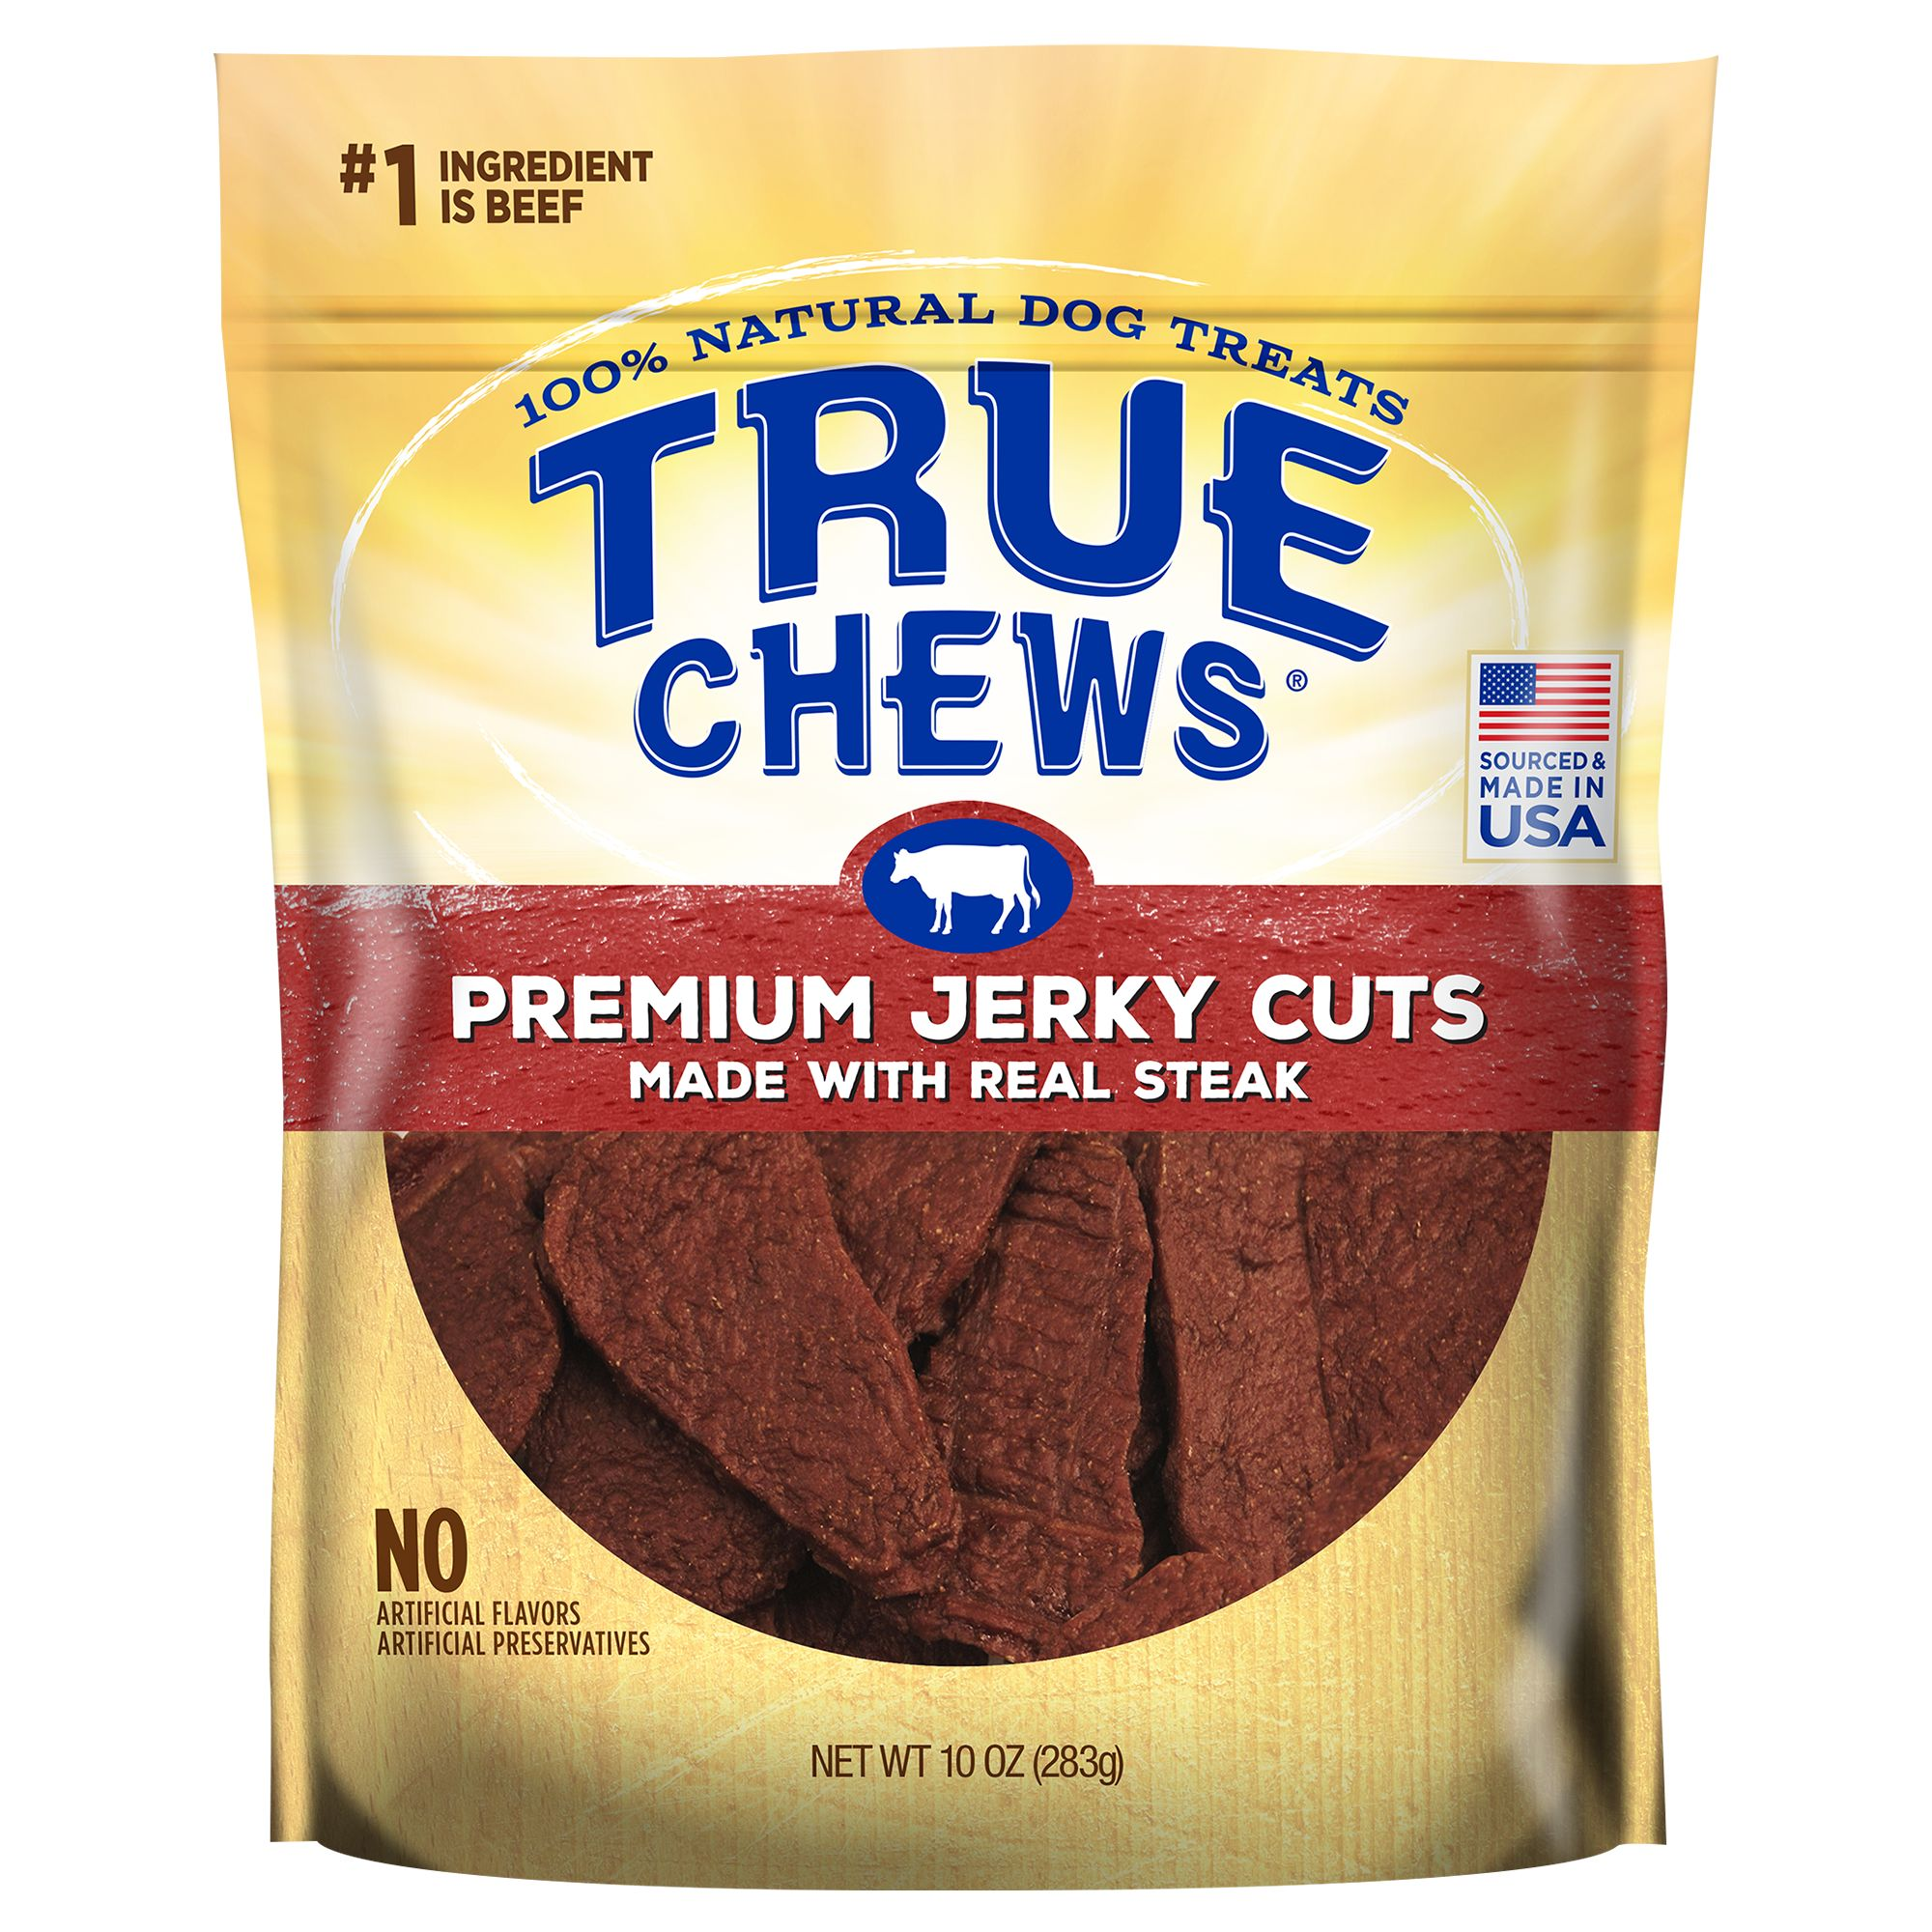 True Chews Premium Jerky Cuts Dog Treat - Natural, Sirloin Steak size: 12 Oz, Beef, Puppy to Senior 5211712